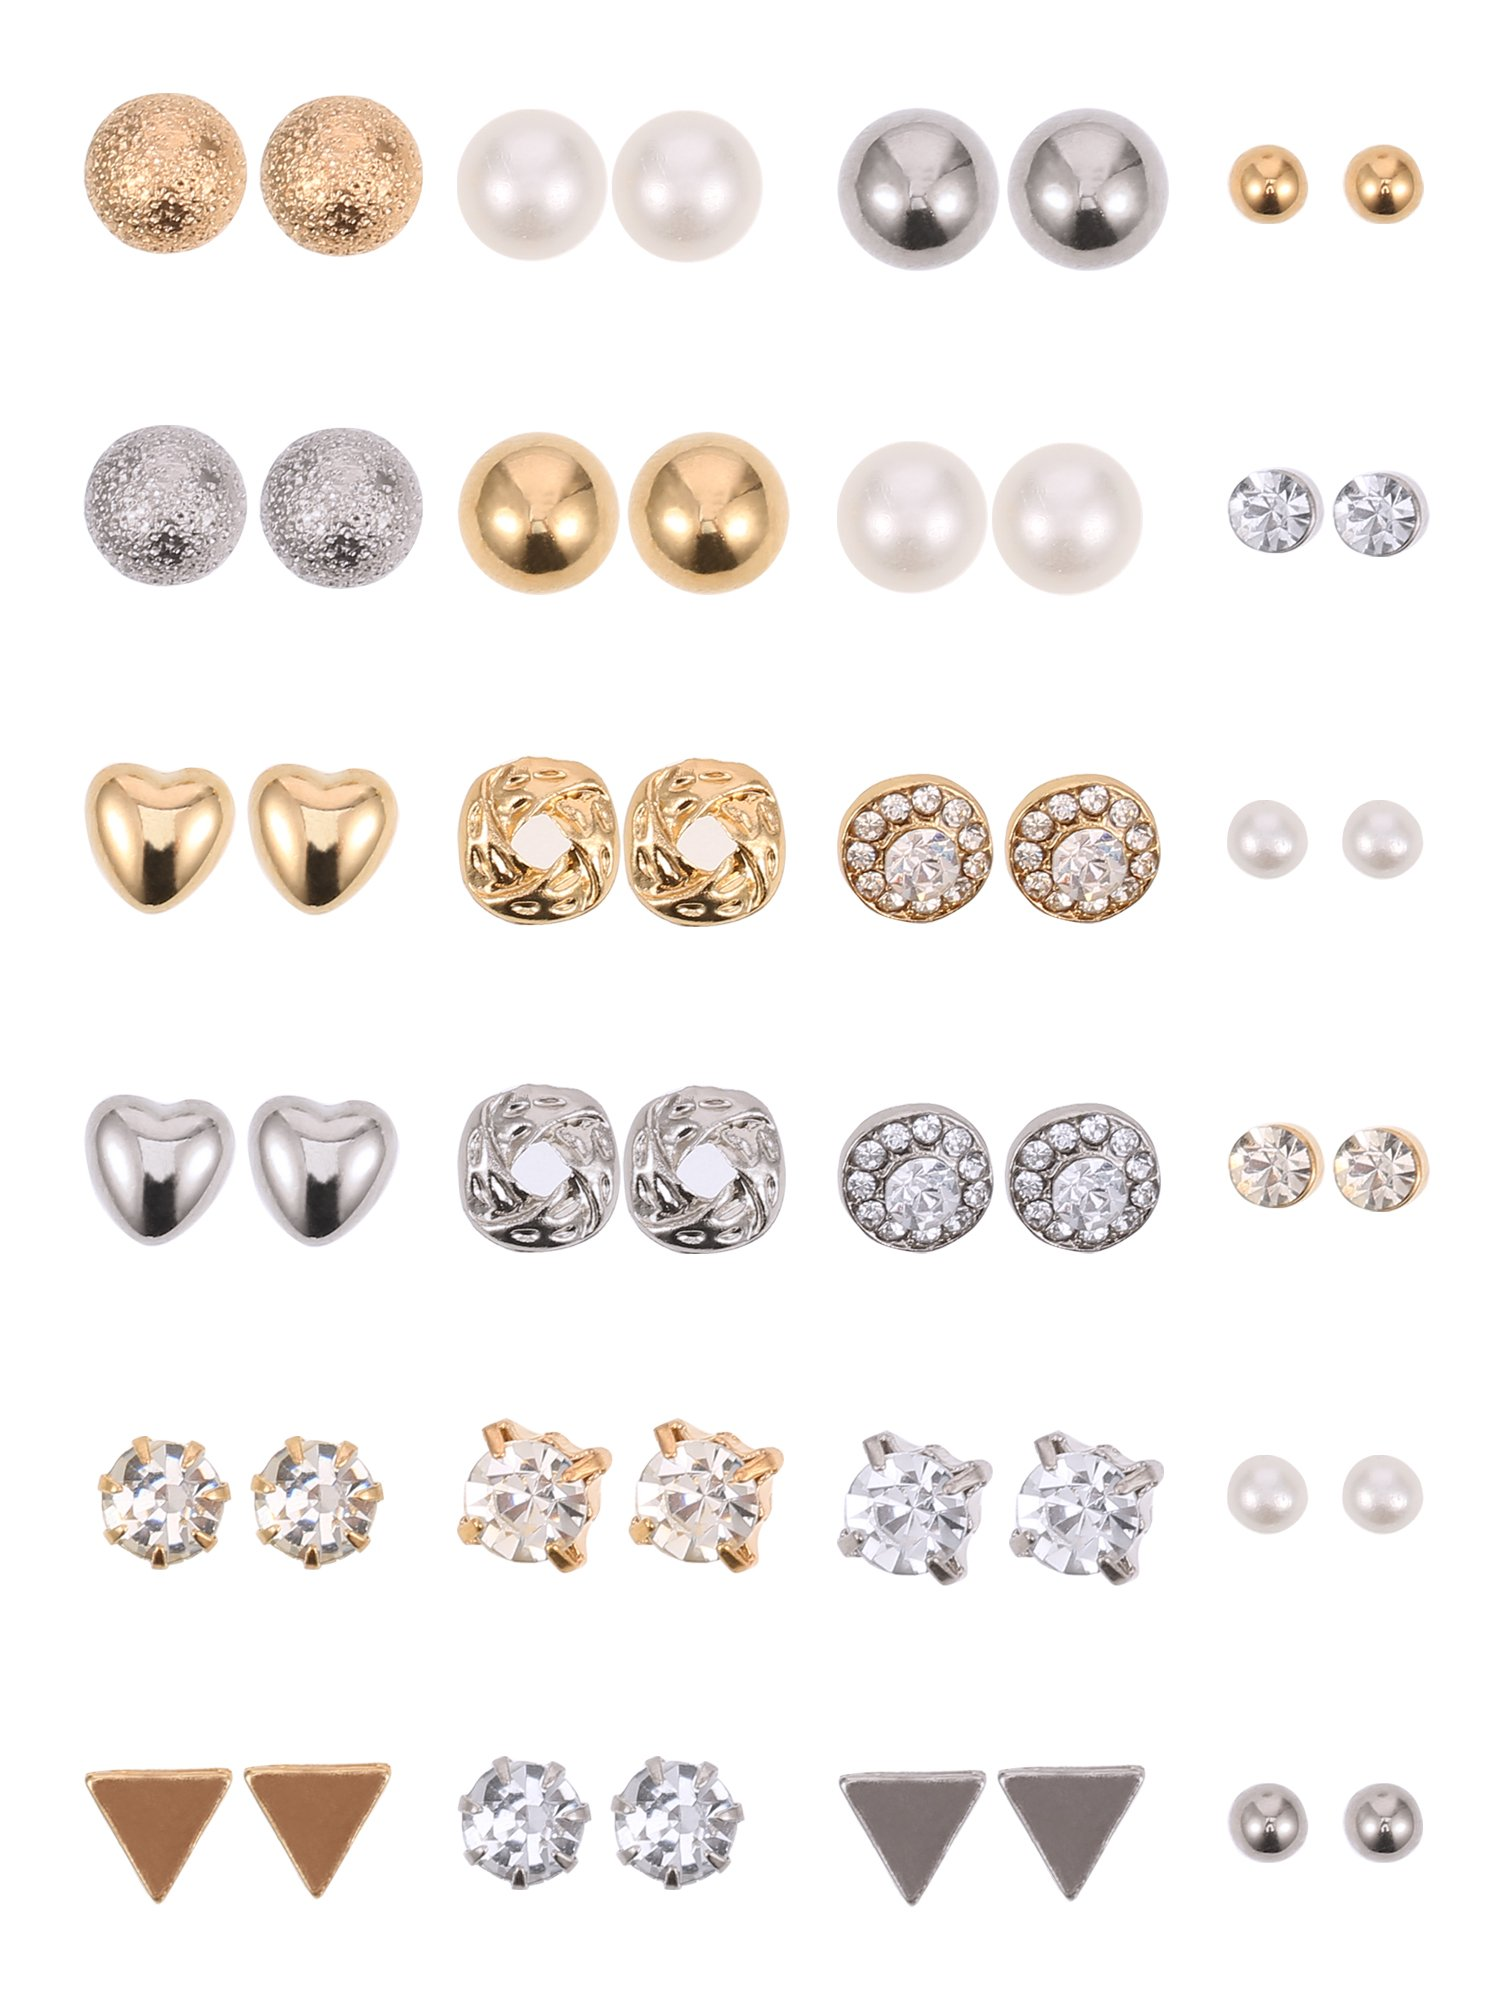 BBTO 24 Pairs Stud Earrings Crystal Pearl Earring Set Ear Stud Jewelry for Girls Women Men, Silver and Gold (Sliver & Gold) by BBTO